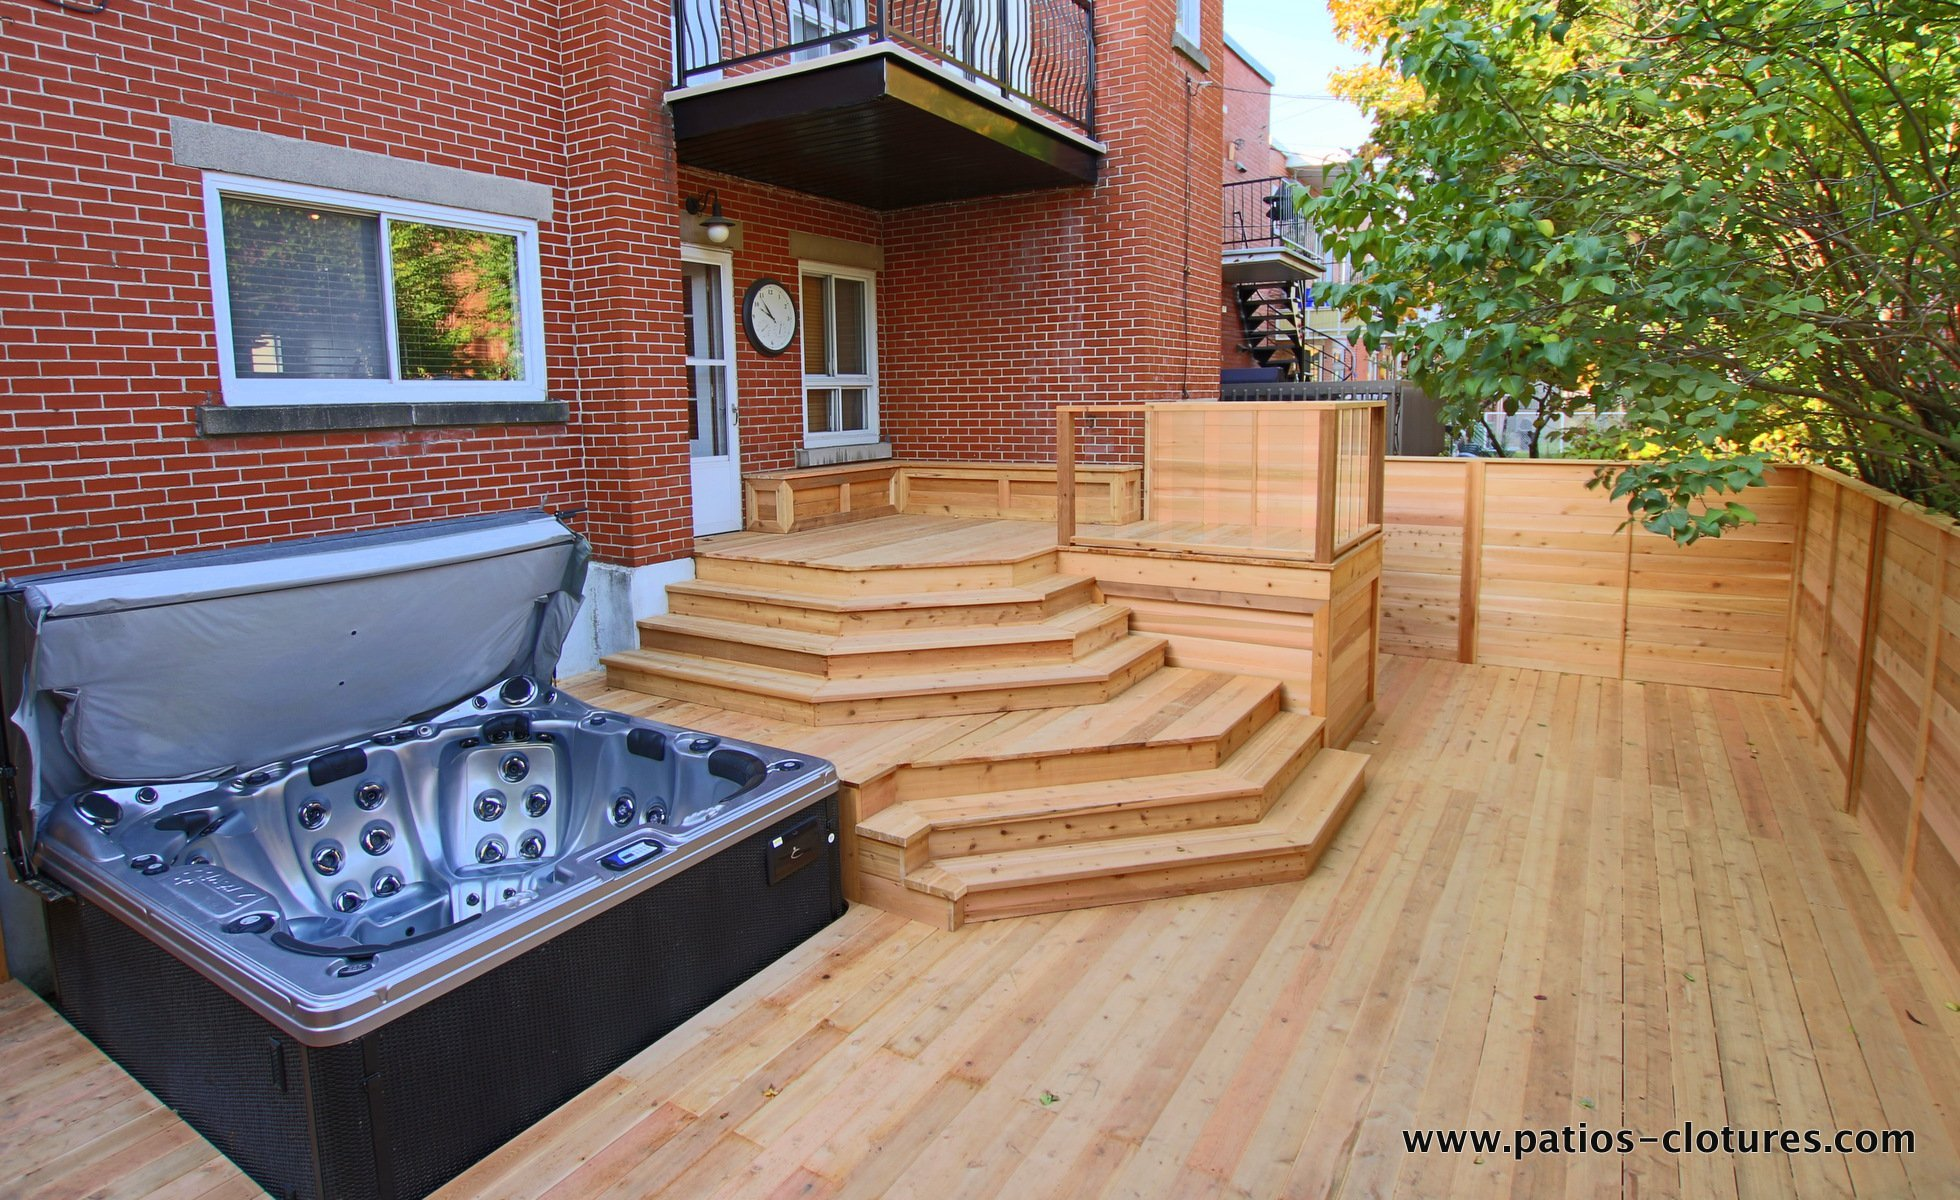 philip deck img hot vogt dooley modern image home gallery tub construction